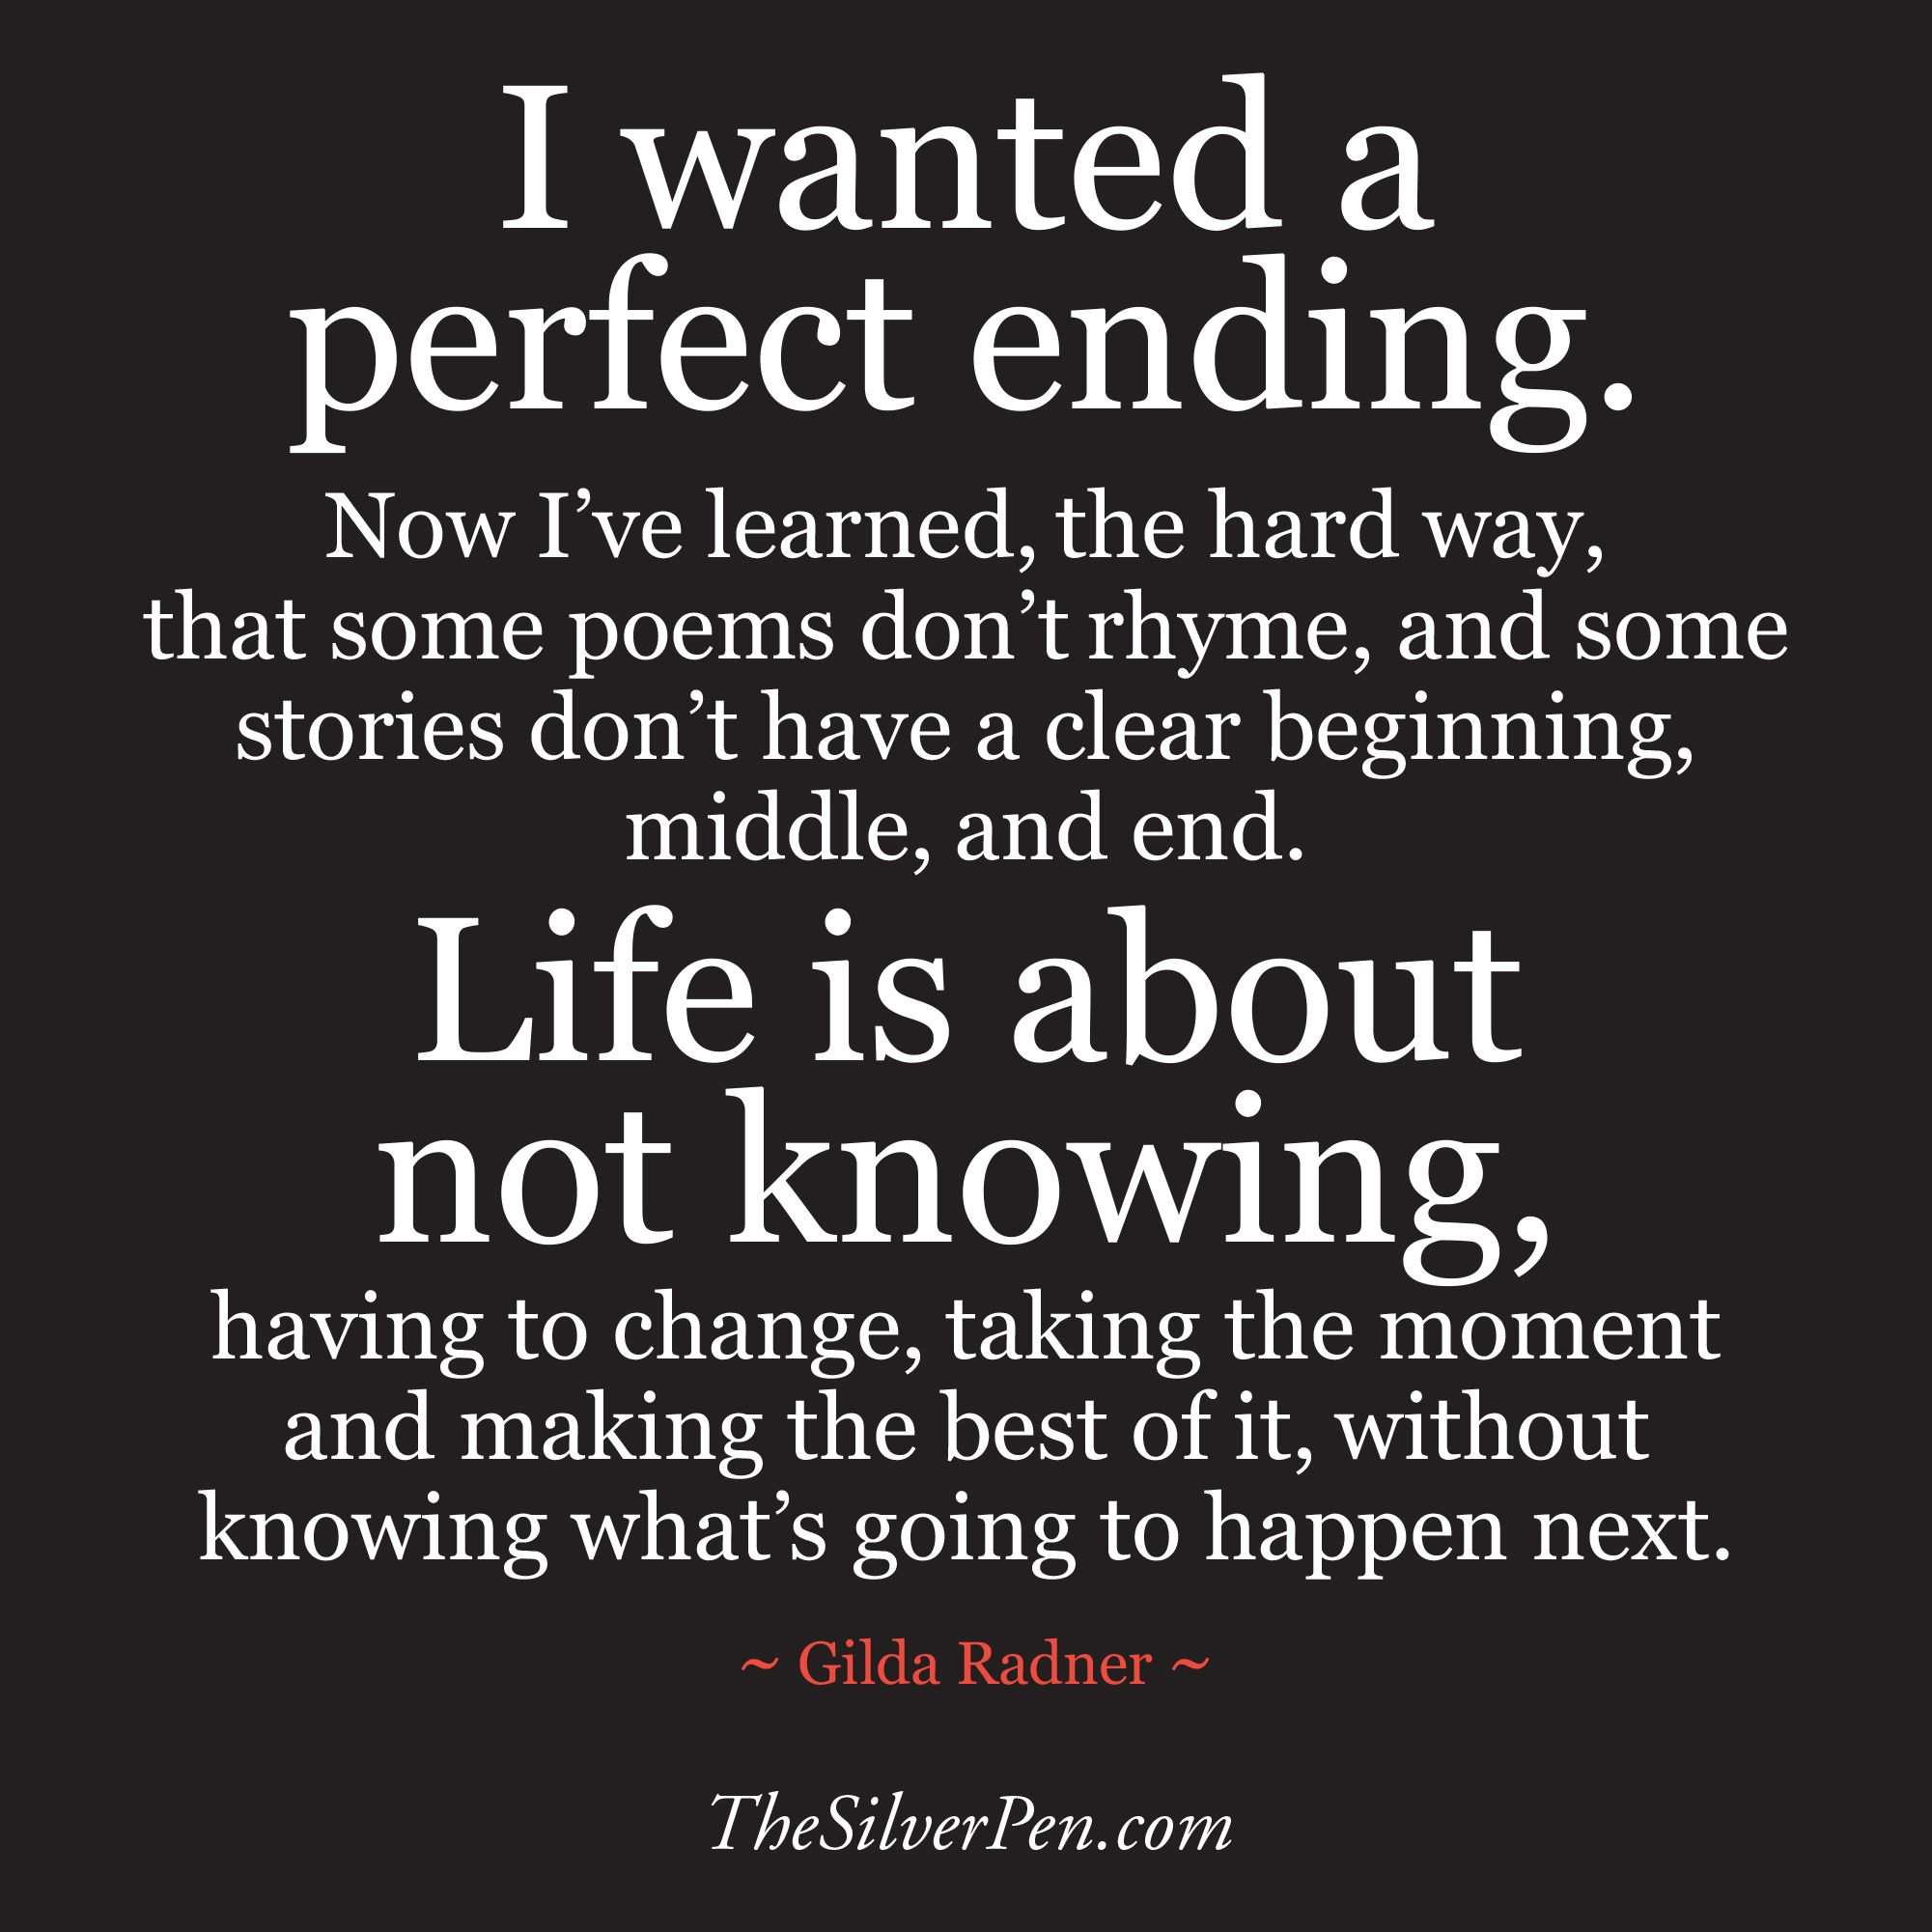 End Quotes I Wanted A Perfect Ending Quote  Inspirational Images